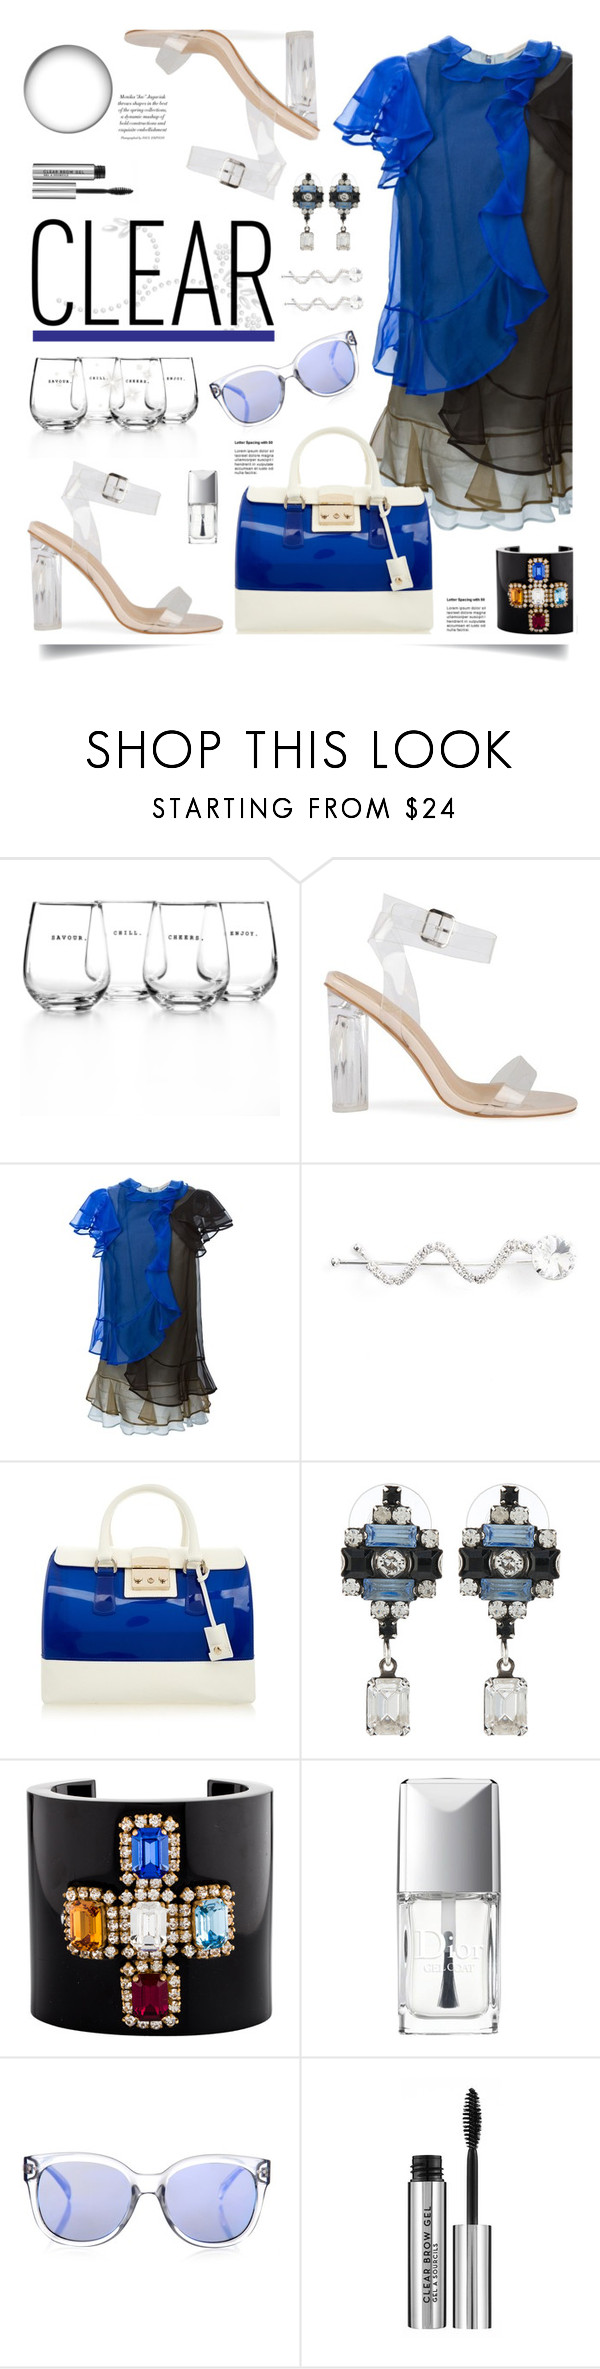 """""""It's All Clear Now"""" by hamaly ❤ liked on Polyvore featuring The Cellar, Christopher Kane, Ficcare, Furla, DANNIJO, Chanel, Christian Dior, Le Specs, Anastasia Beverly Hills and clear"""